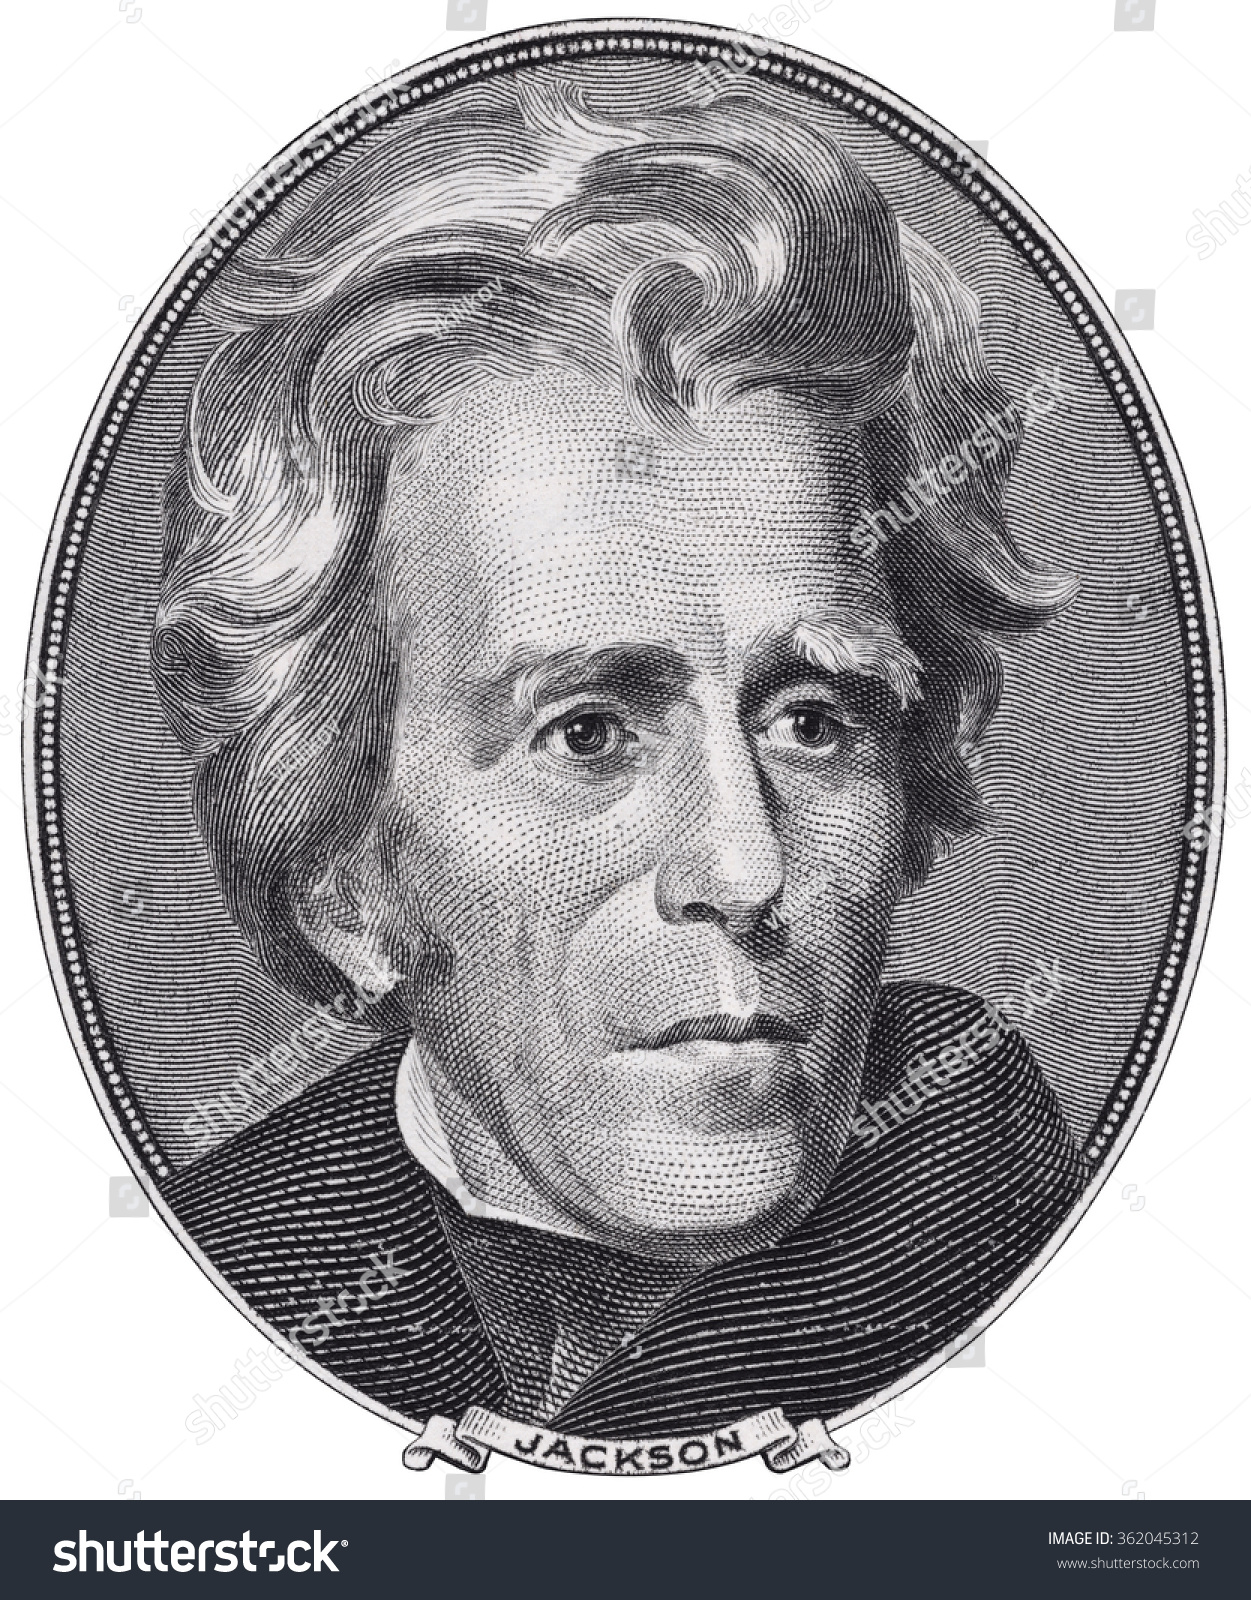 andrew jackson outline : jackson inaugurated military hero and self-made man andrew  jackson is sworn in as the seventh president of the united states in his  inaugural.